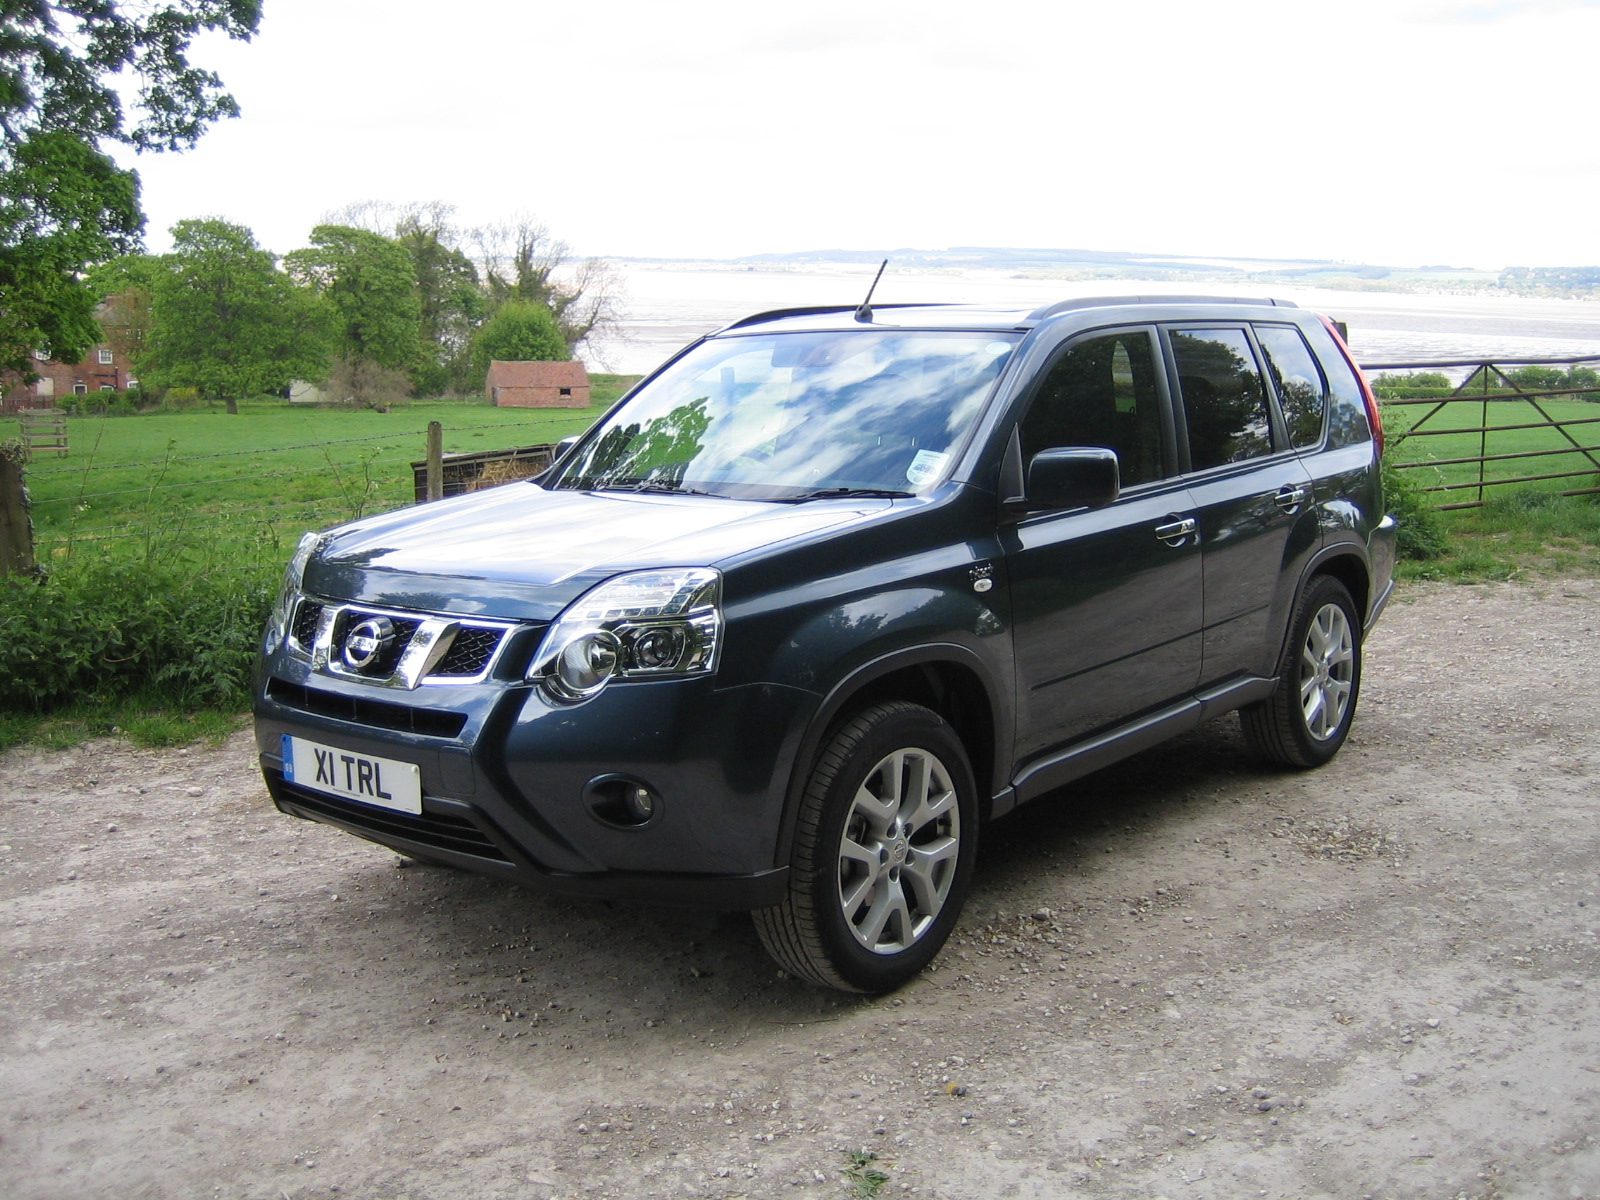 Nissan X-Trail road test shows why it's a family favourite